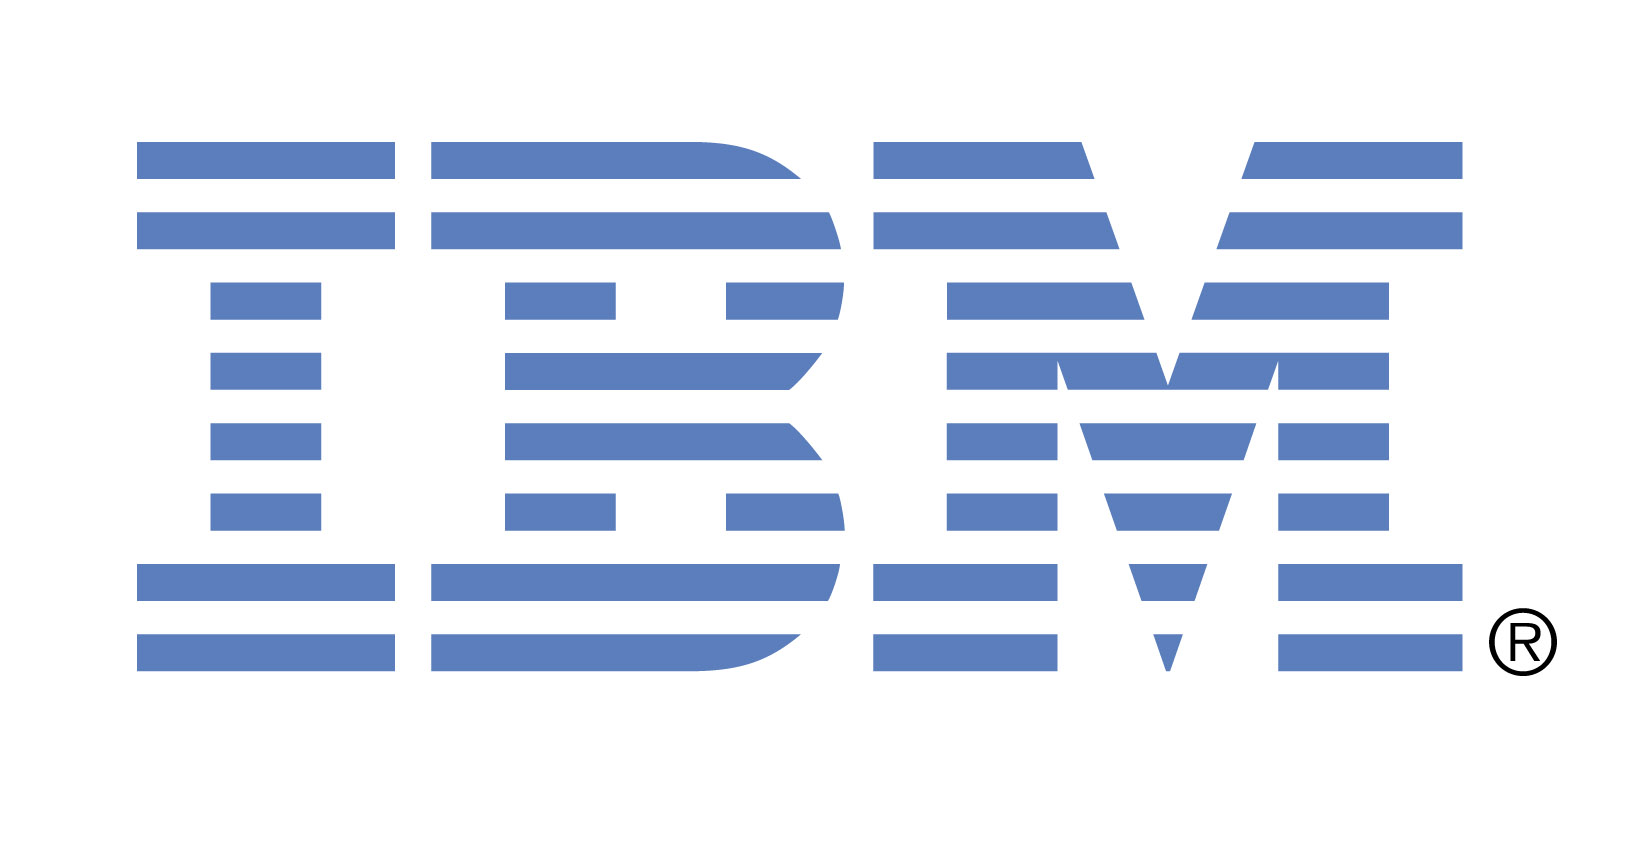 https://i1.wp.com/i.zdnet.com/blogs/ibmlogo-21.jpg